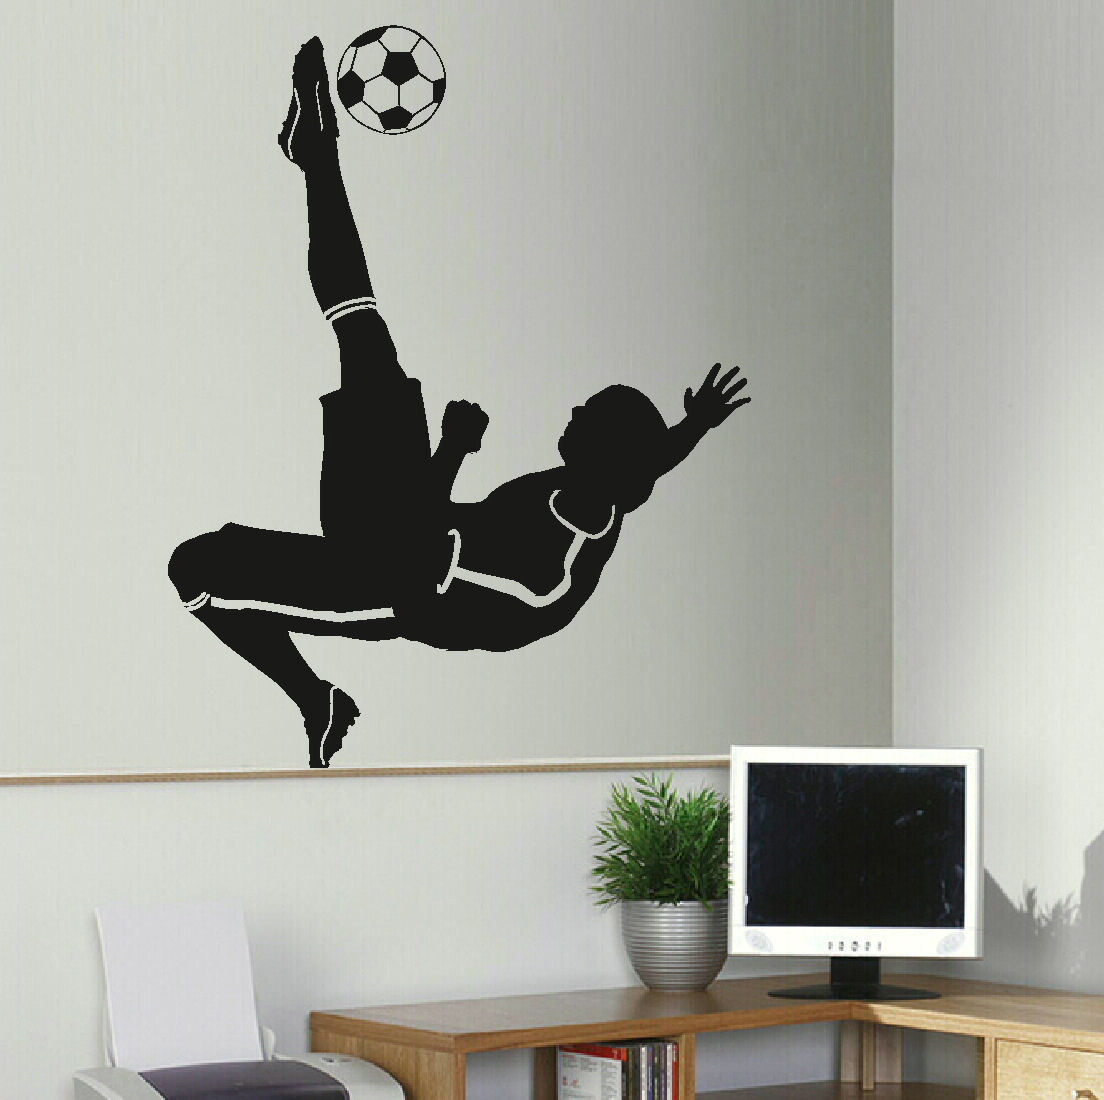 Transfer Stickers For Walls D307 Large Football Footballer Wall Mural Transfer Art